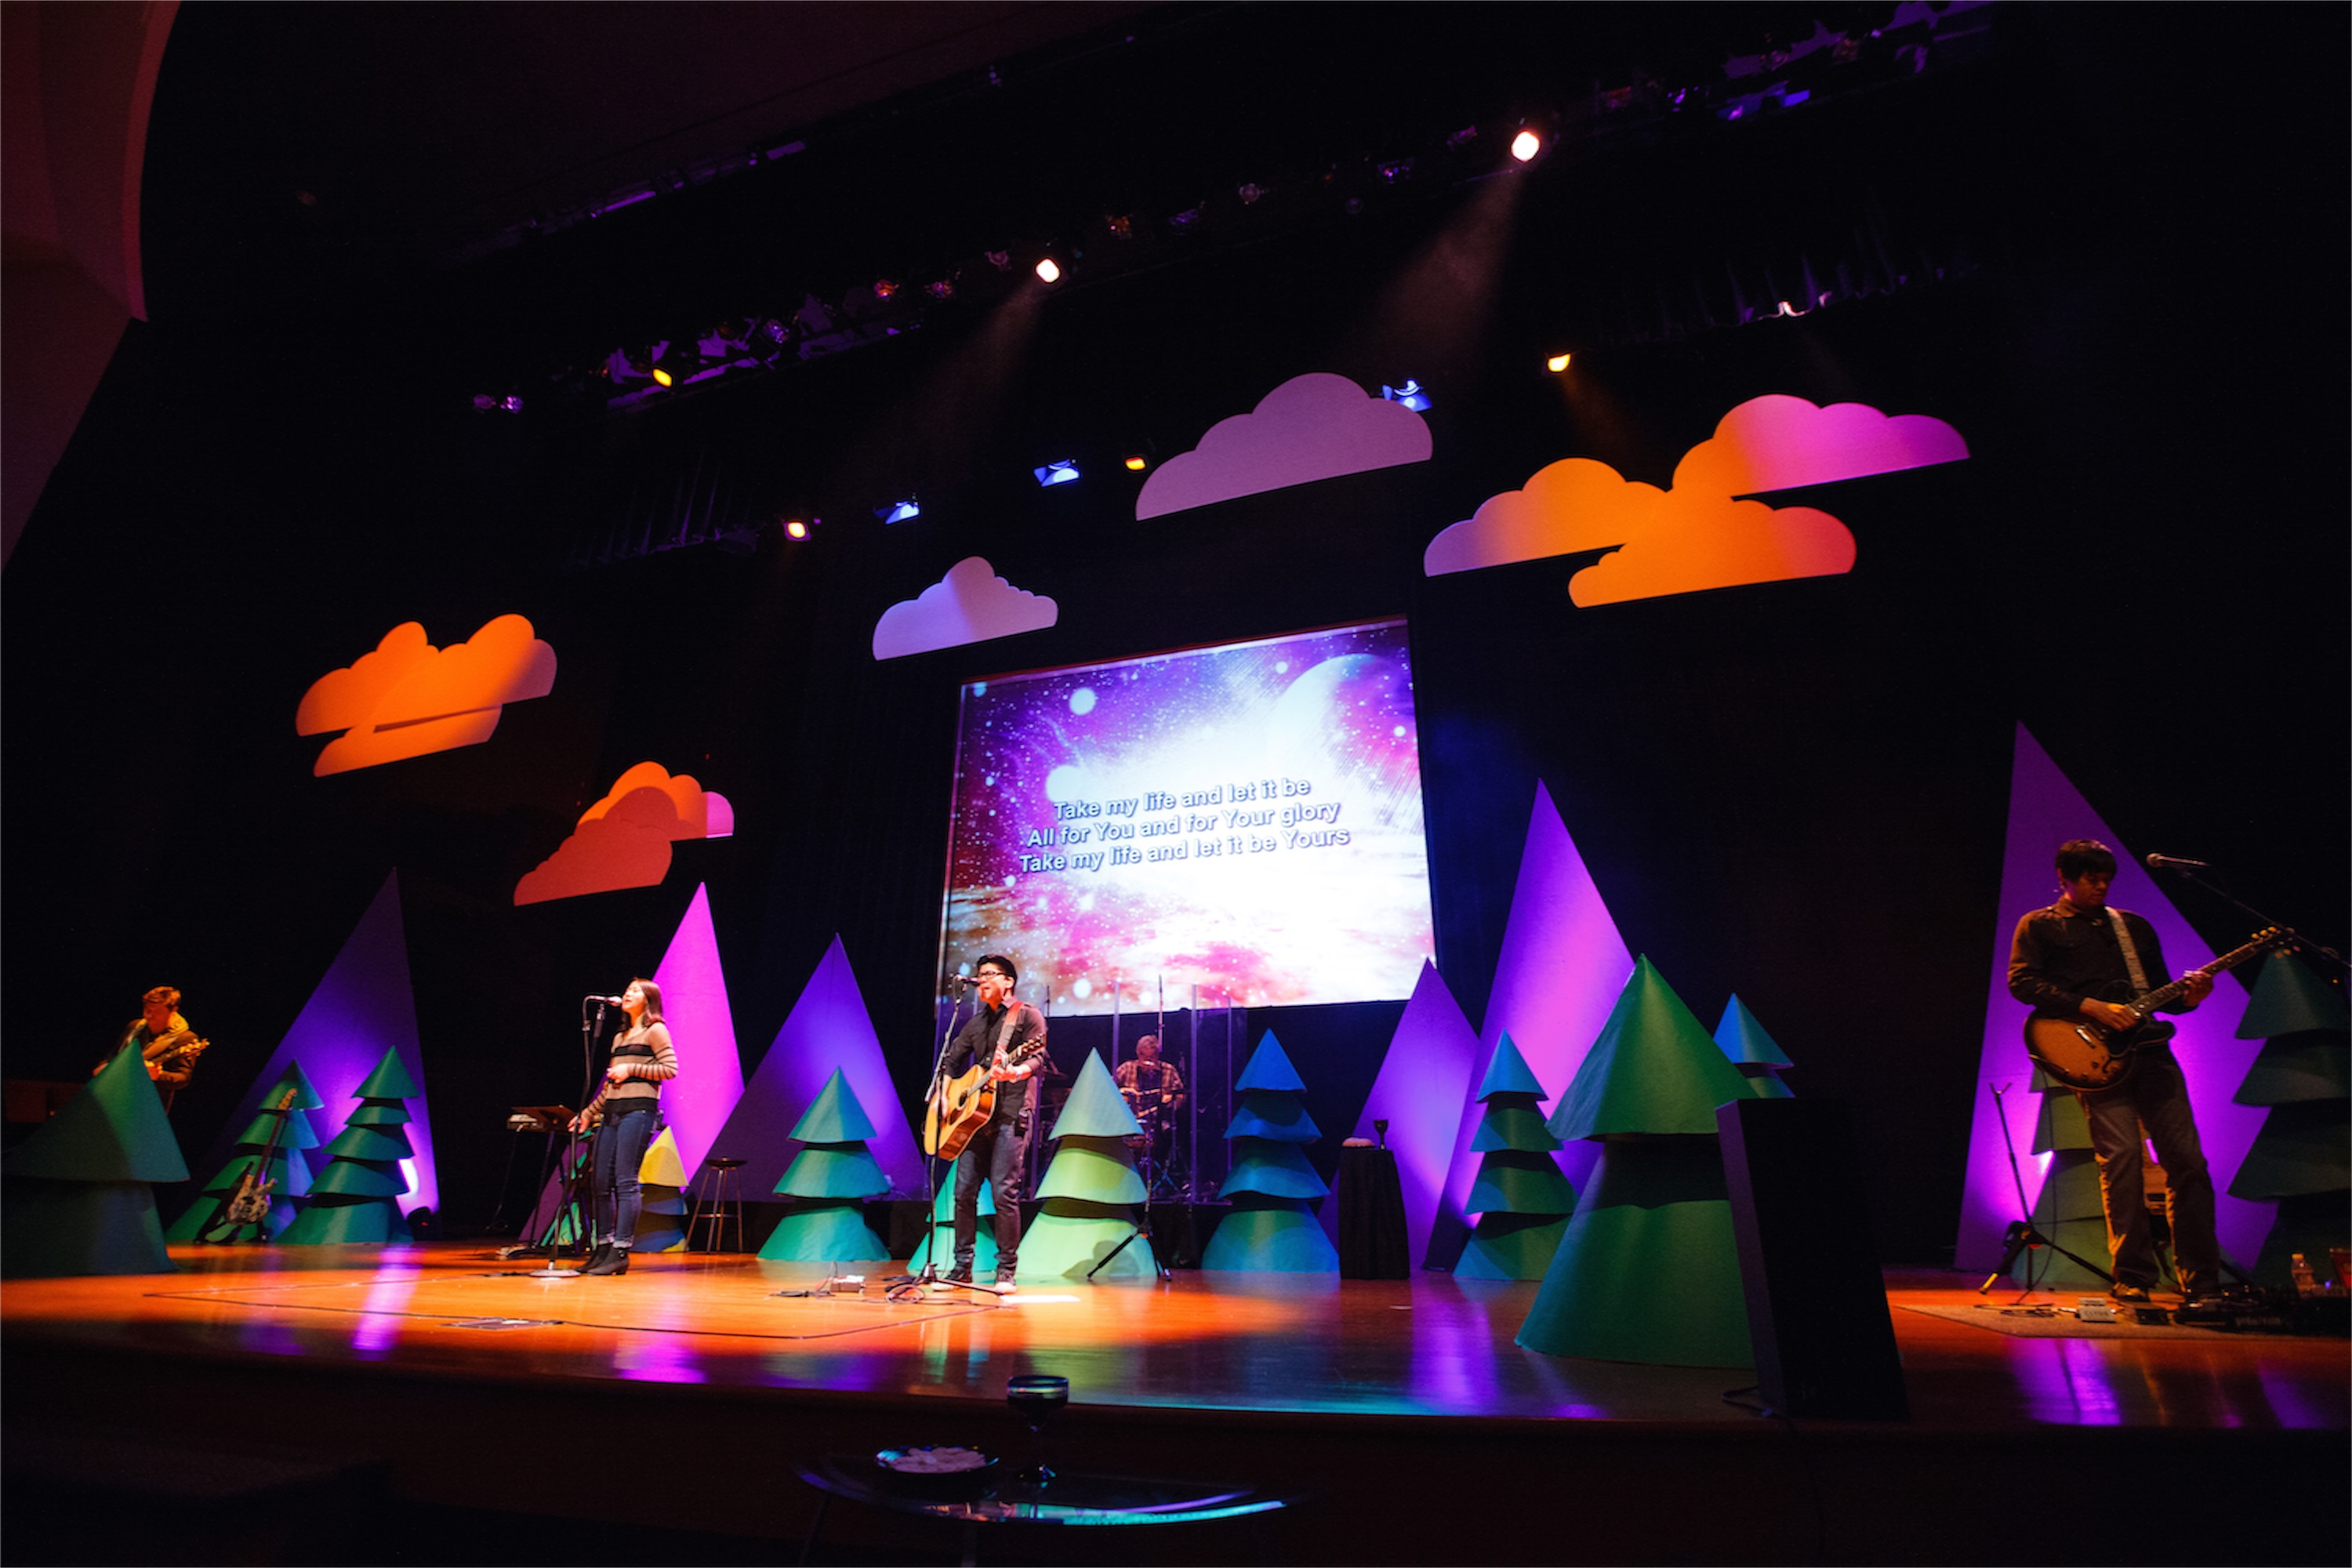 Conical Christmas | Church Stage Design Ideas - photo#6